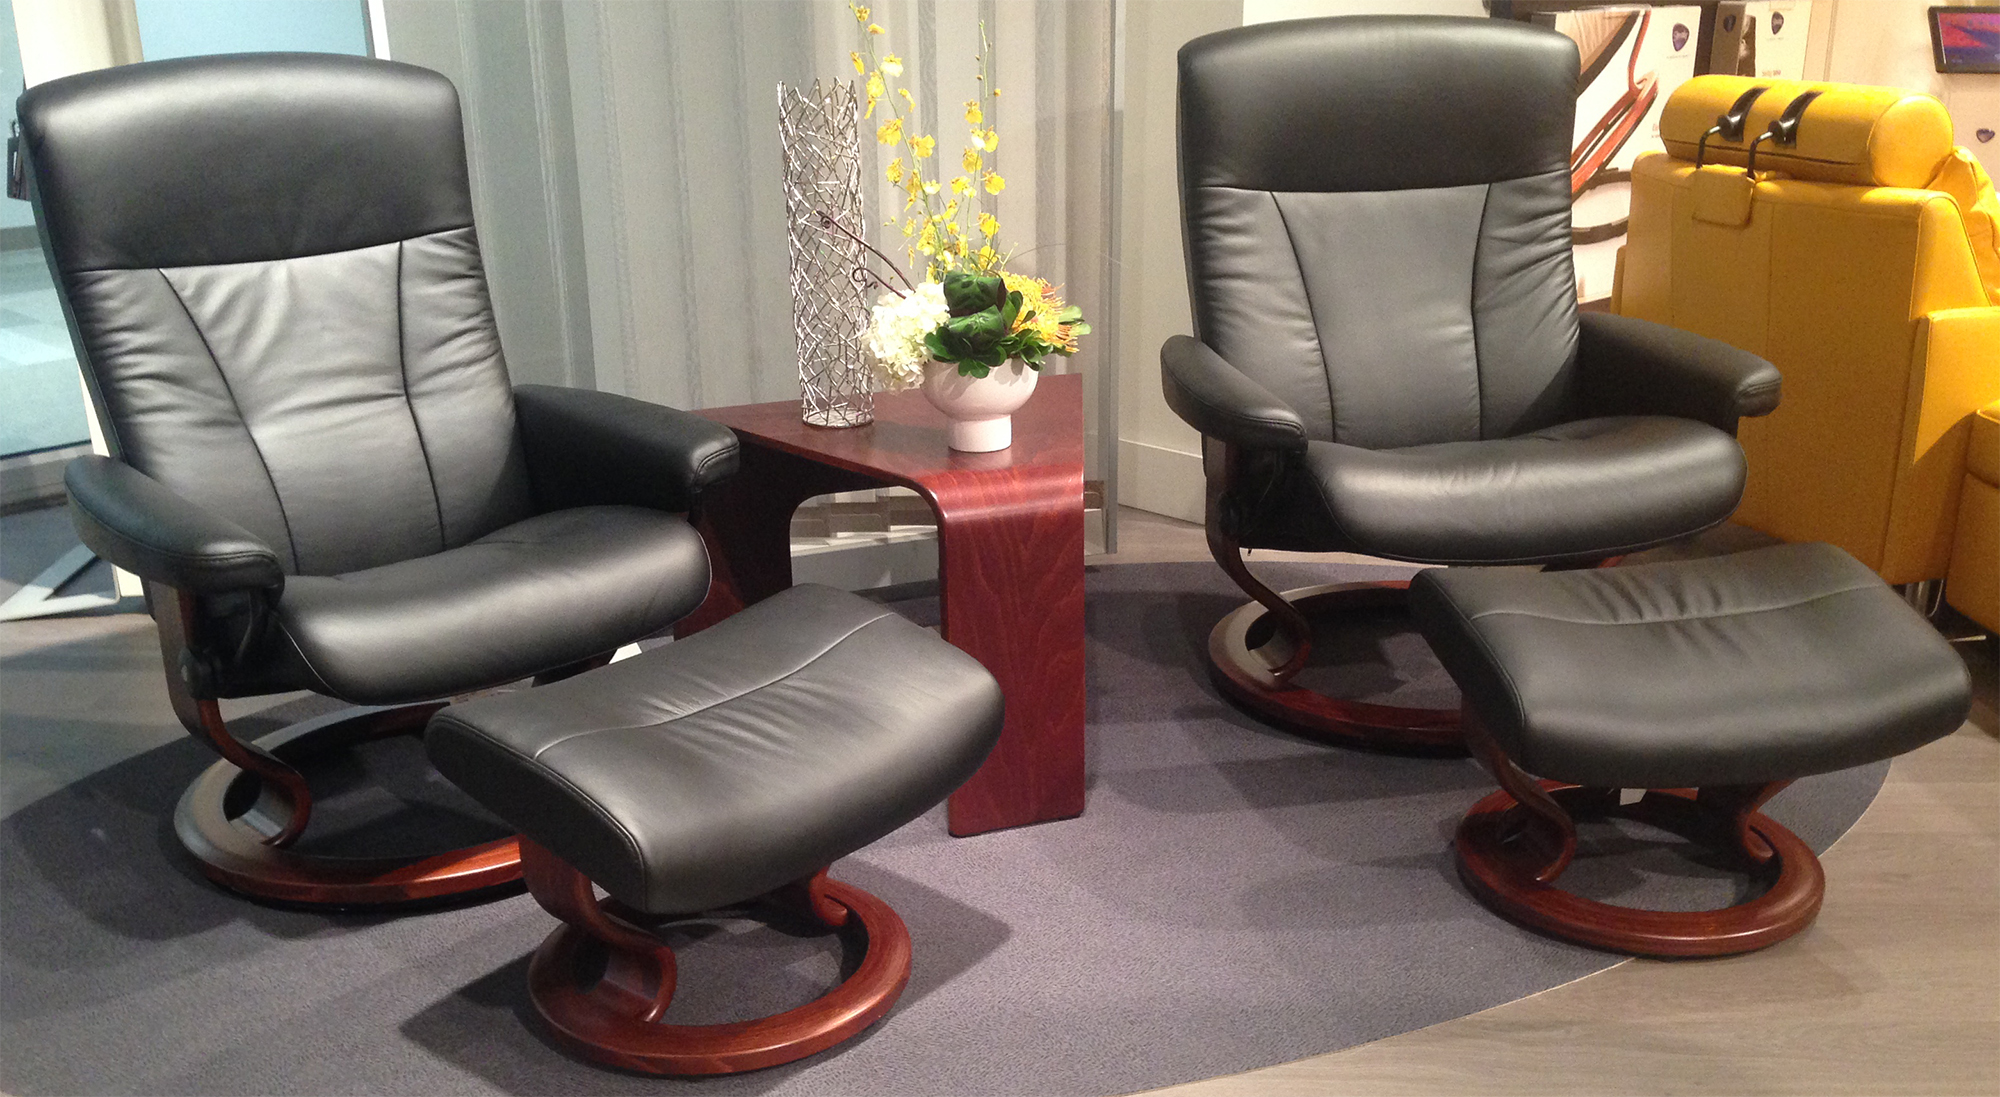 Stressless Chair Prices Ekornes Stressless President Large And Medium Recliner